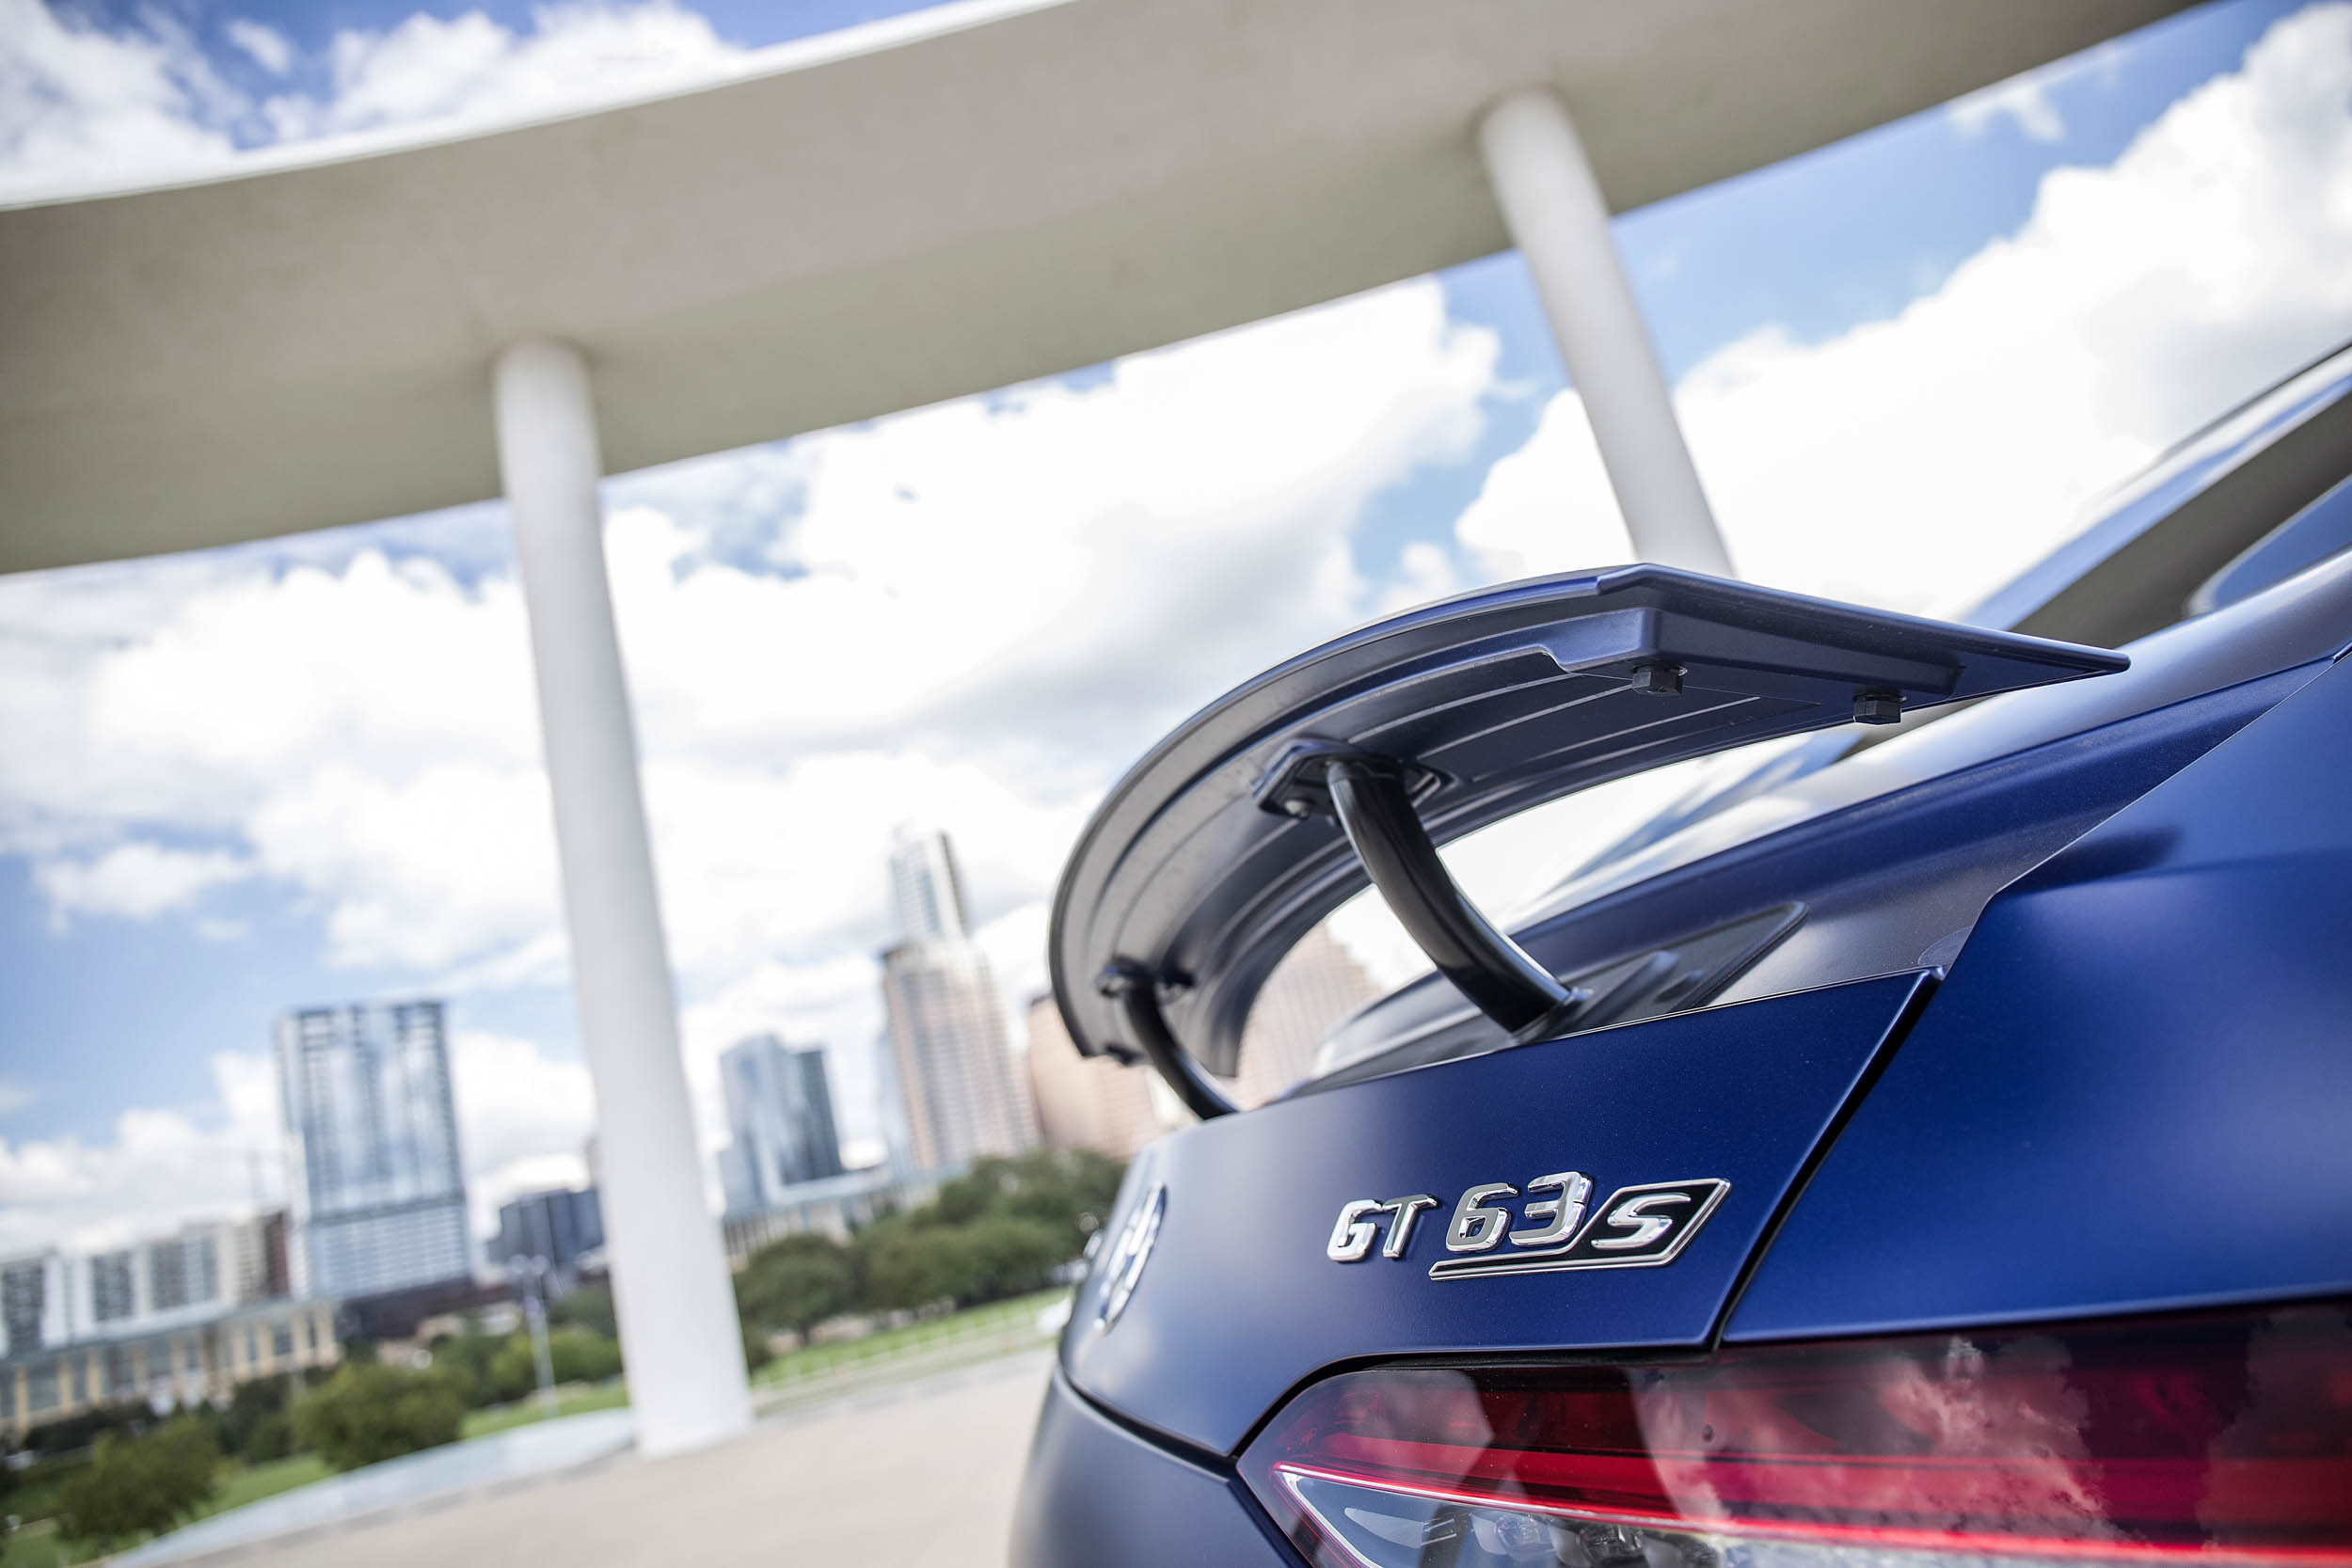 Mercedes-AMG GT 63 S wing